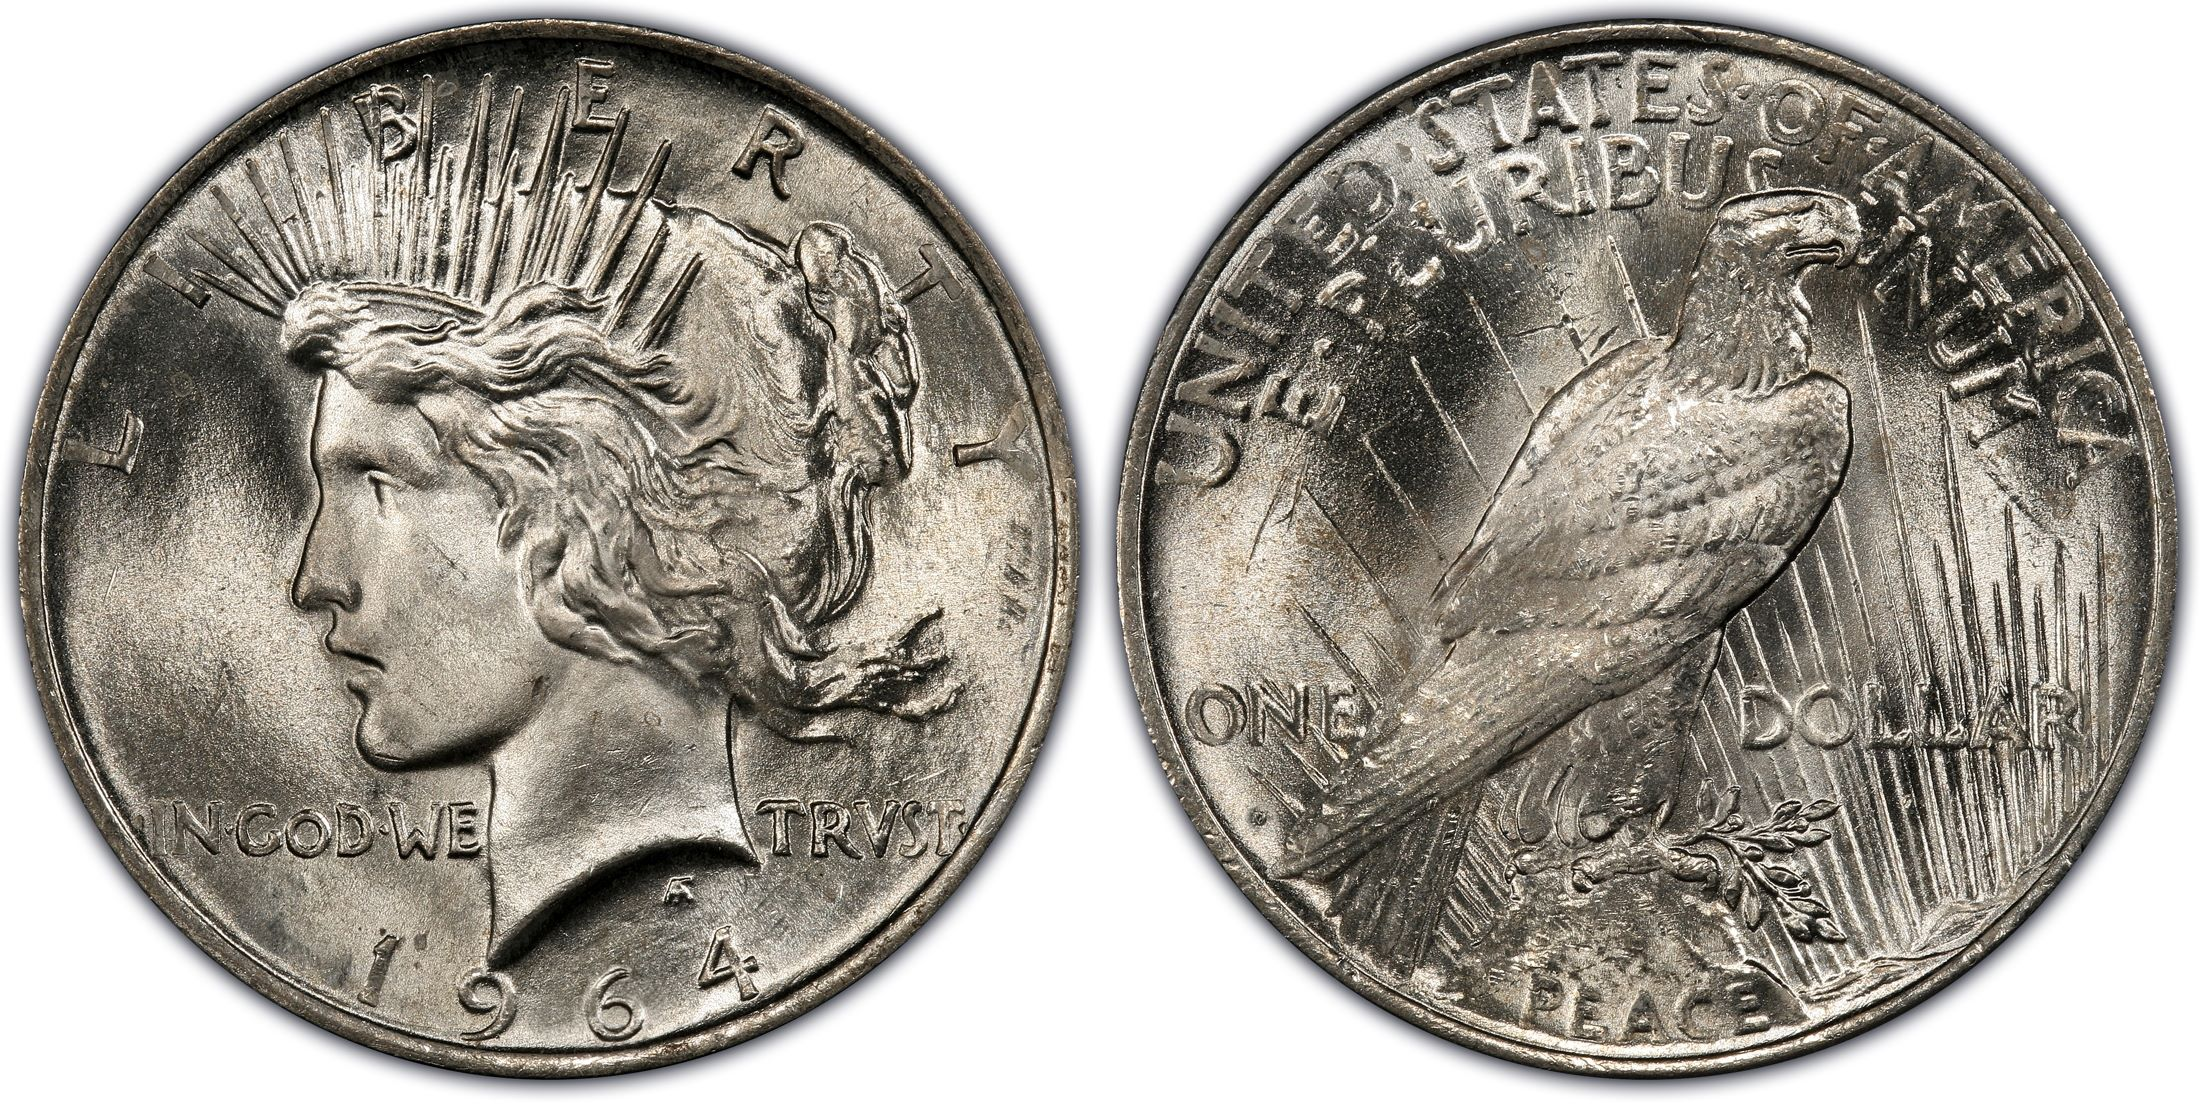 1964 D 1 Regular Strike Pcgs Coinfacts